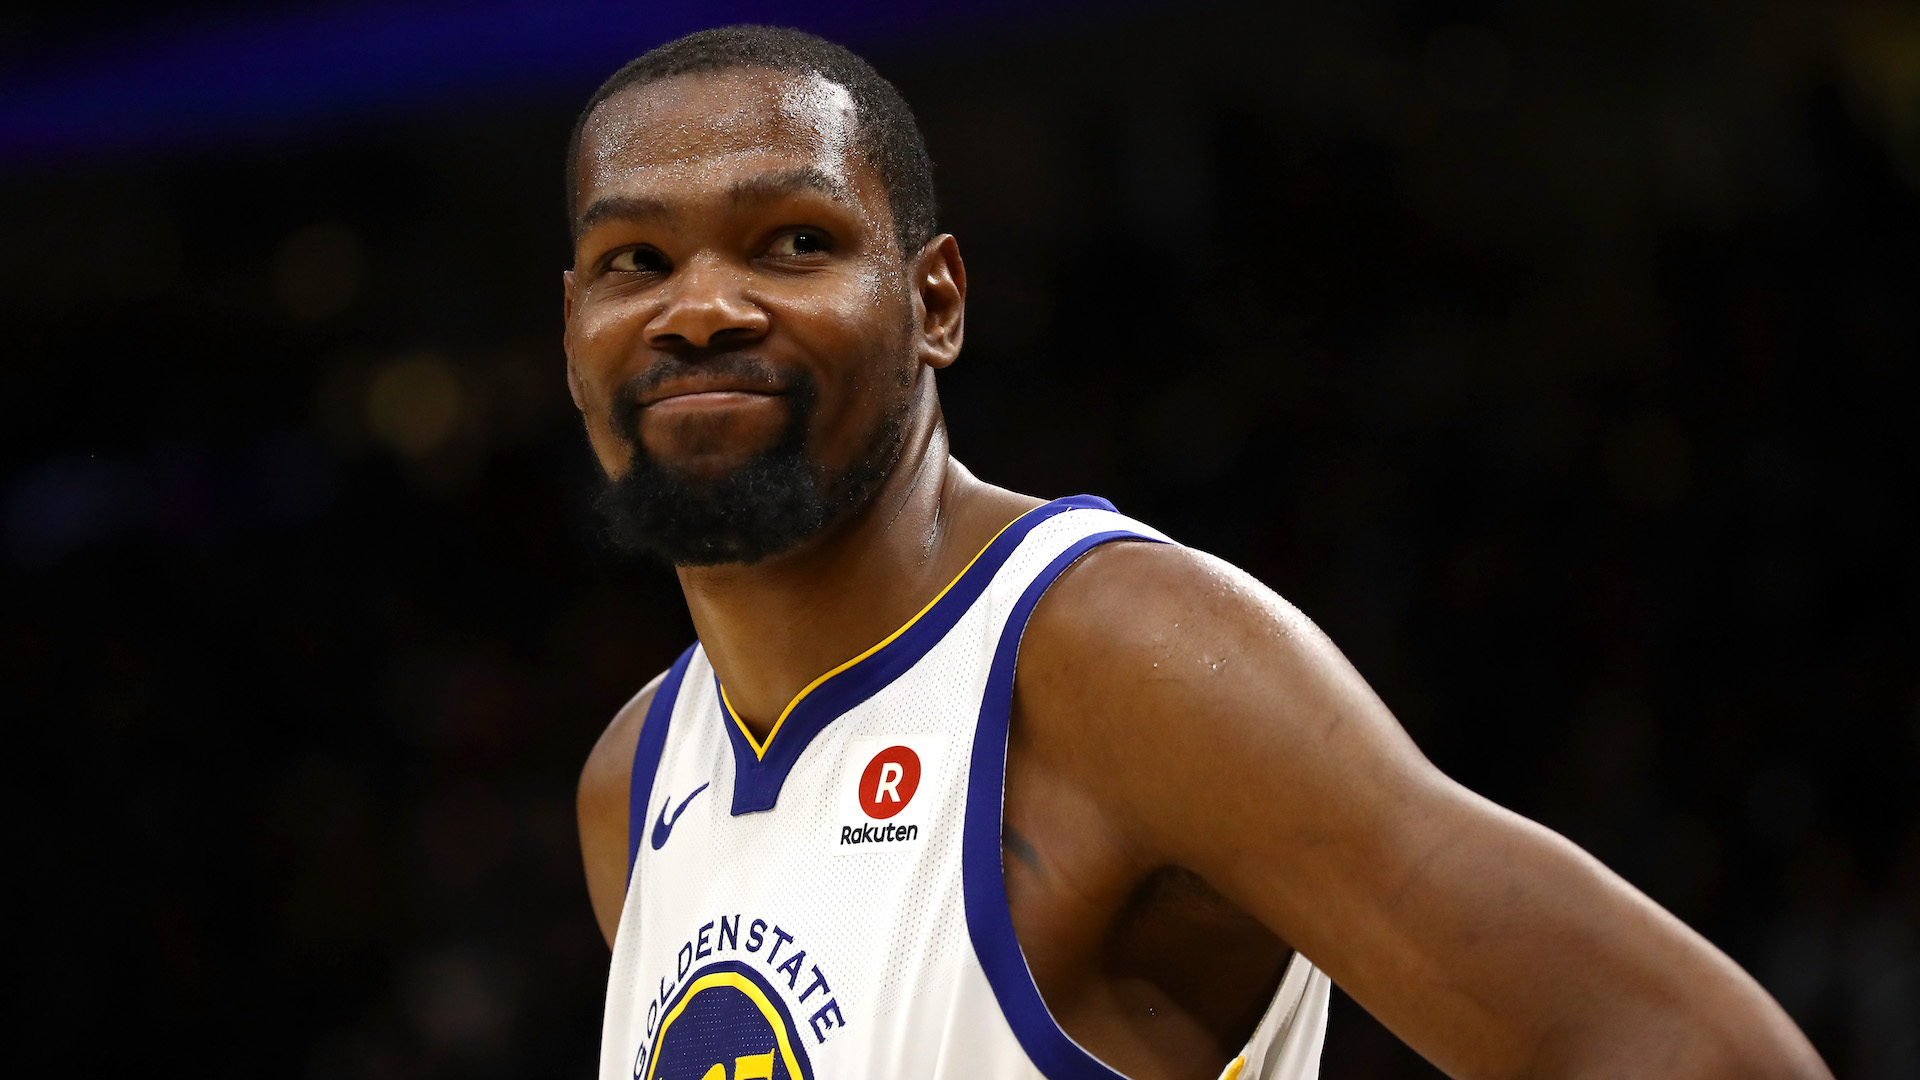 Kevin Durant Responds to Kash Doll After She Tweets Lyrics With KD Initials